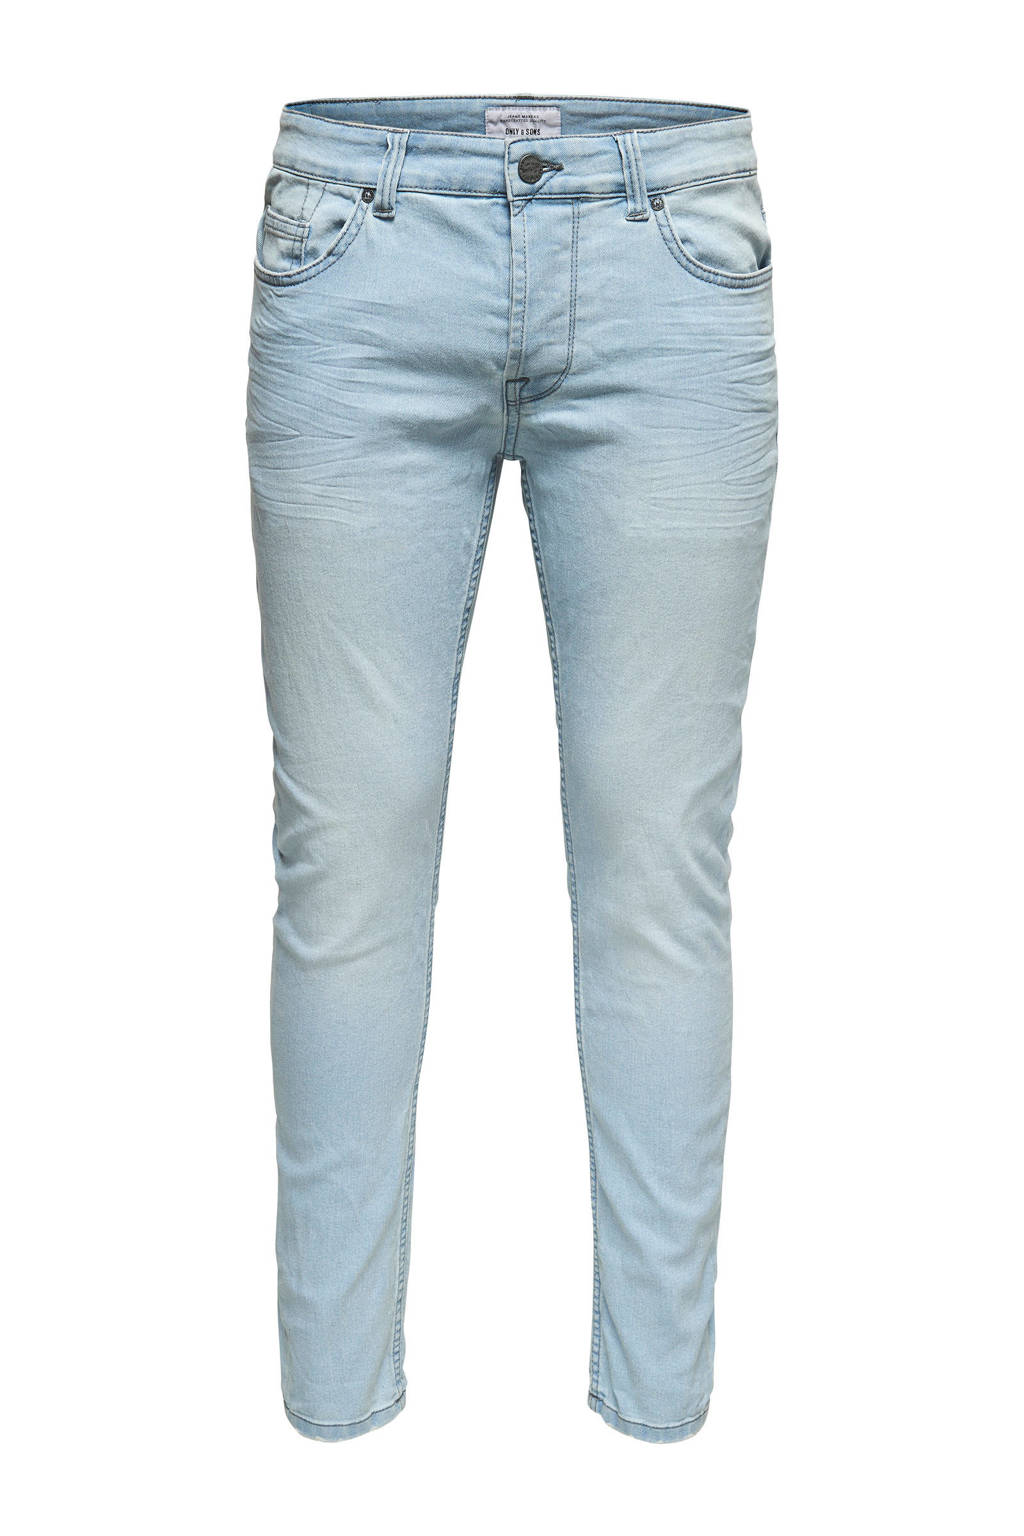 Only & Sons slim fit jeans, Blue denim